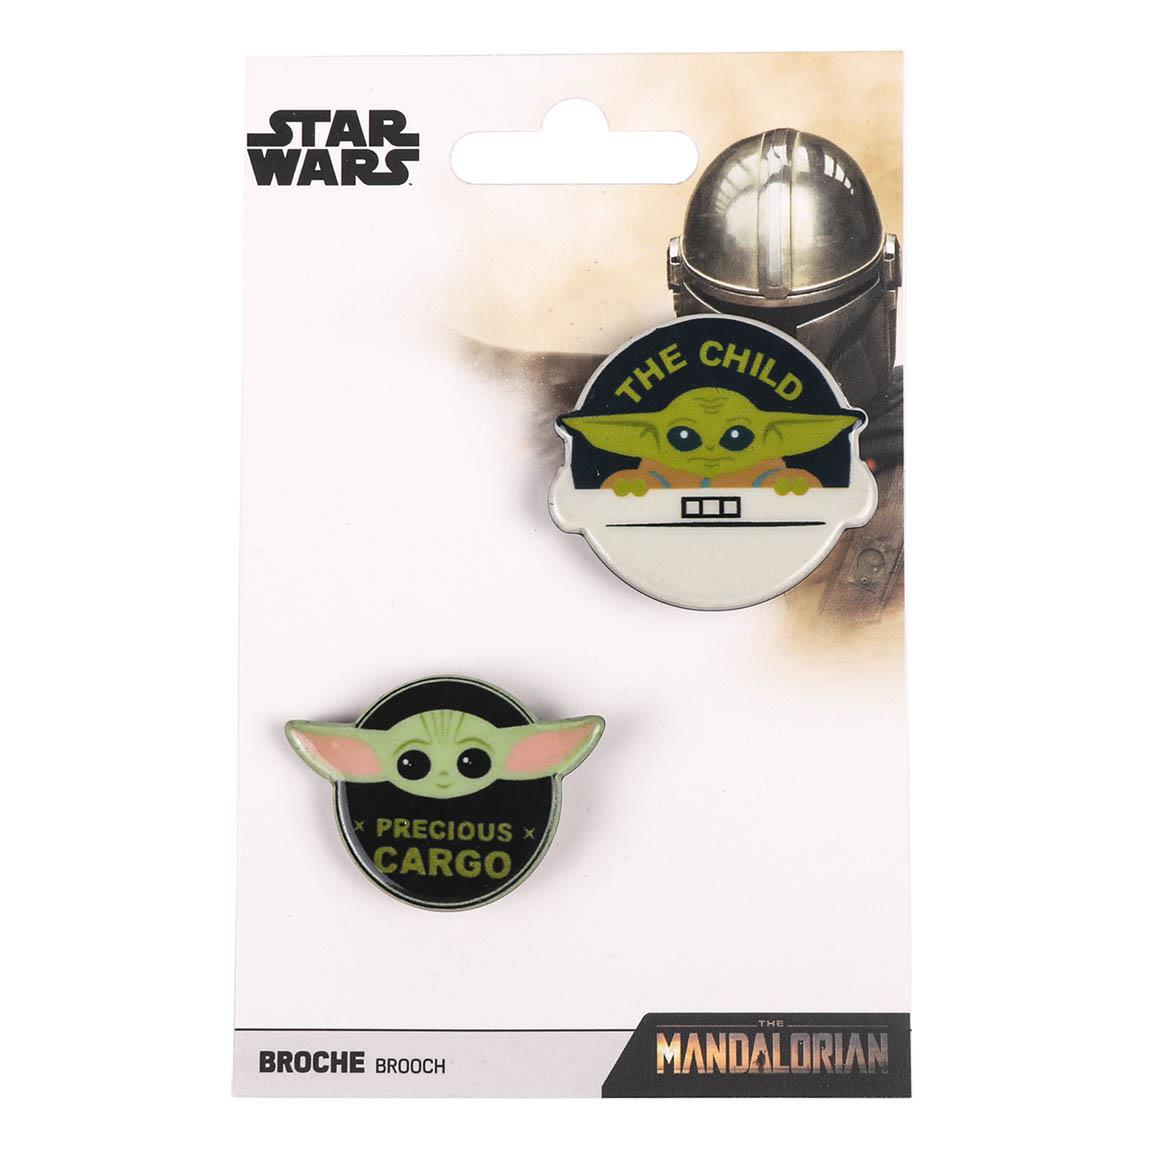 STAR WARS - THE CHILD - BROCHES